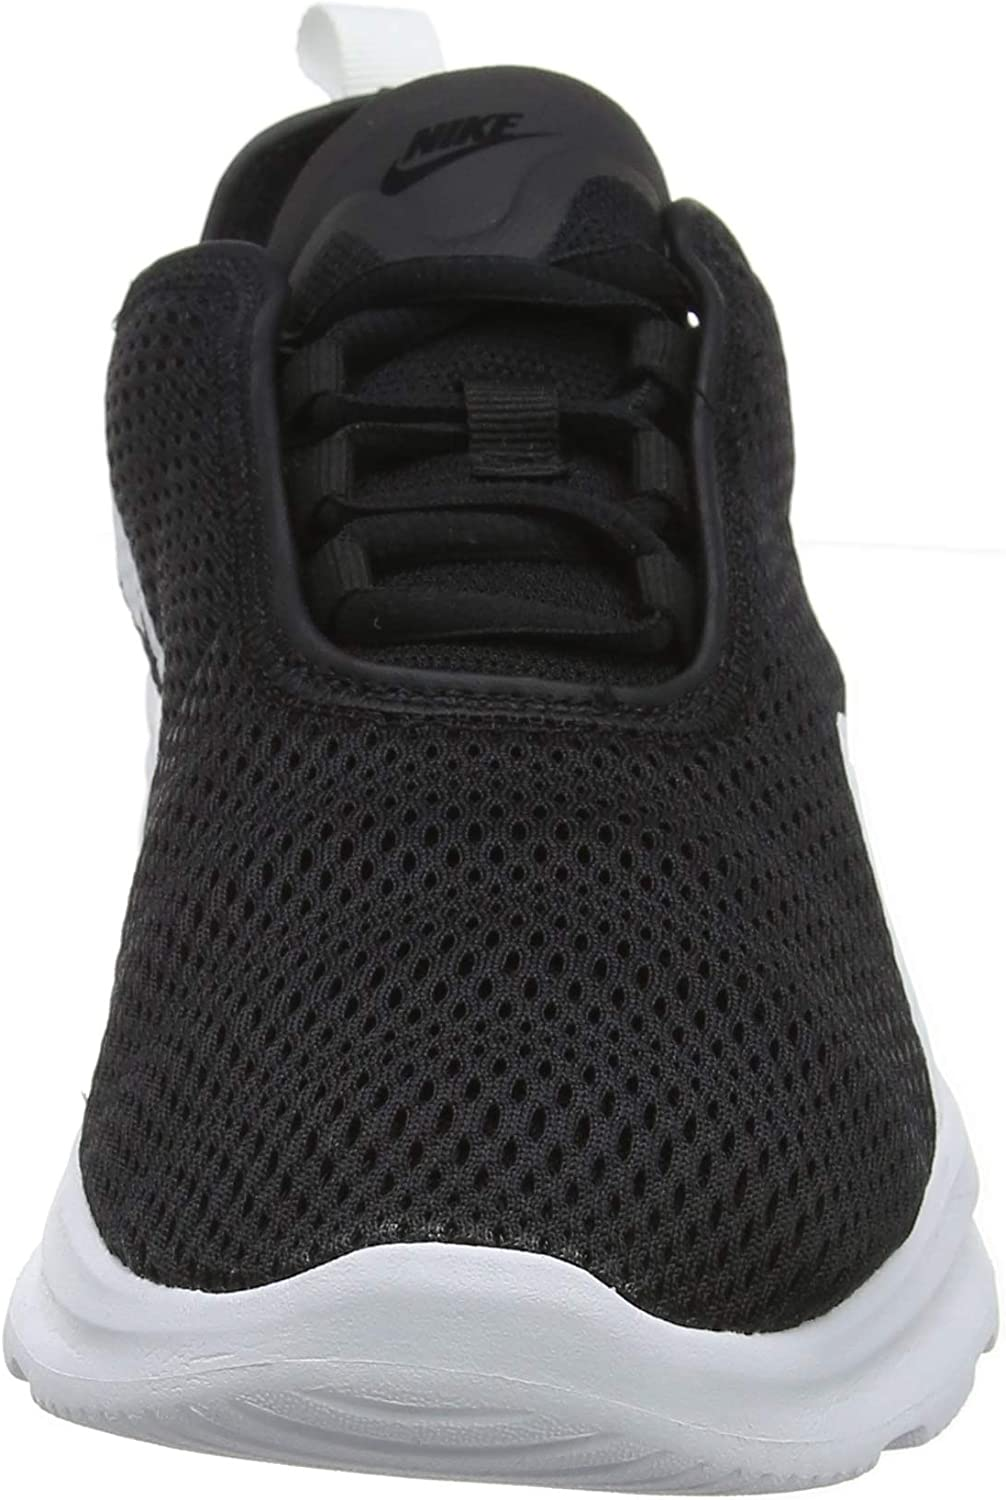 Nike Air Max Motion 2, Chaussures de Running Homme: Nike